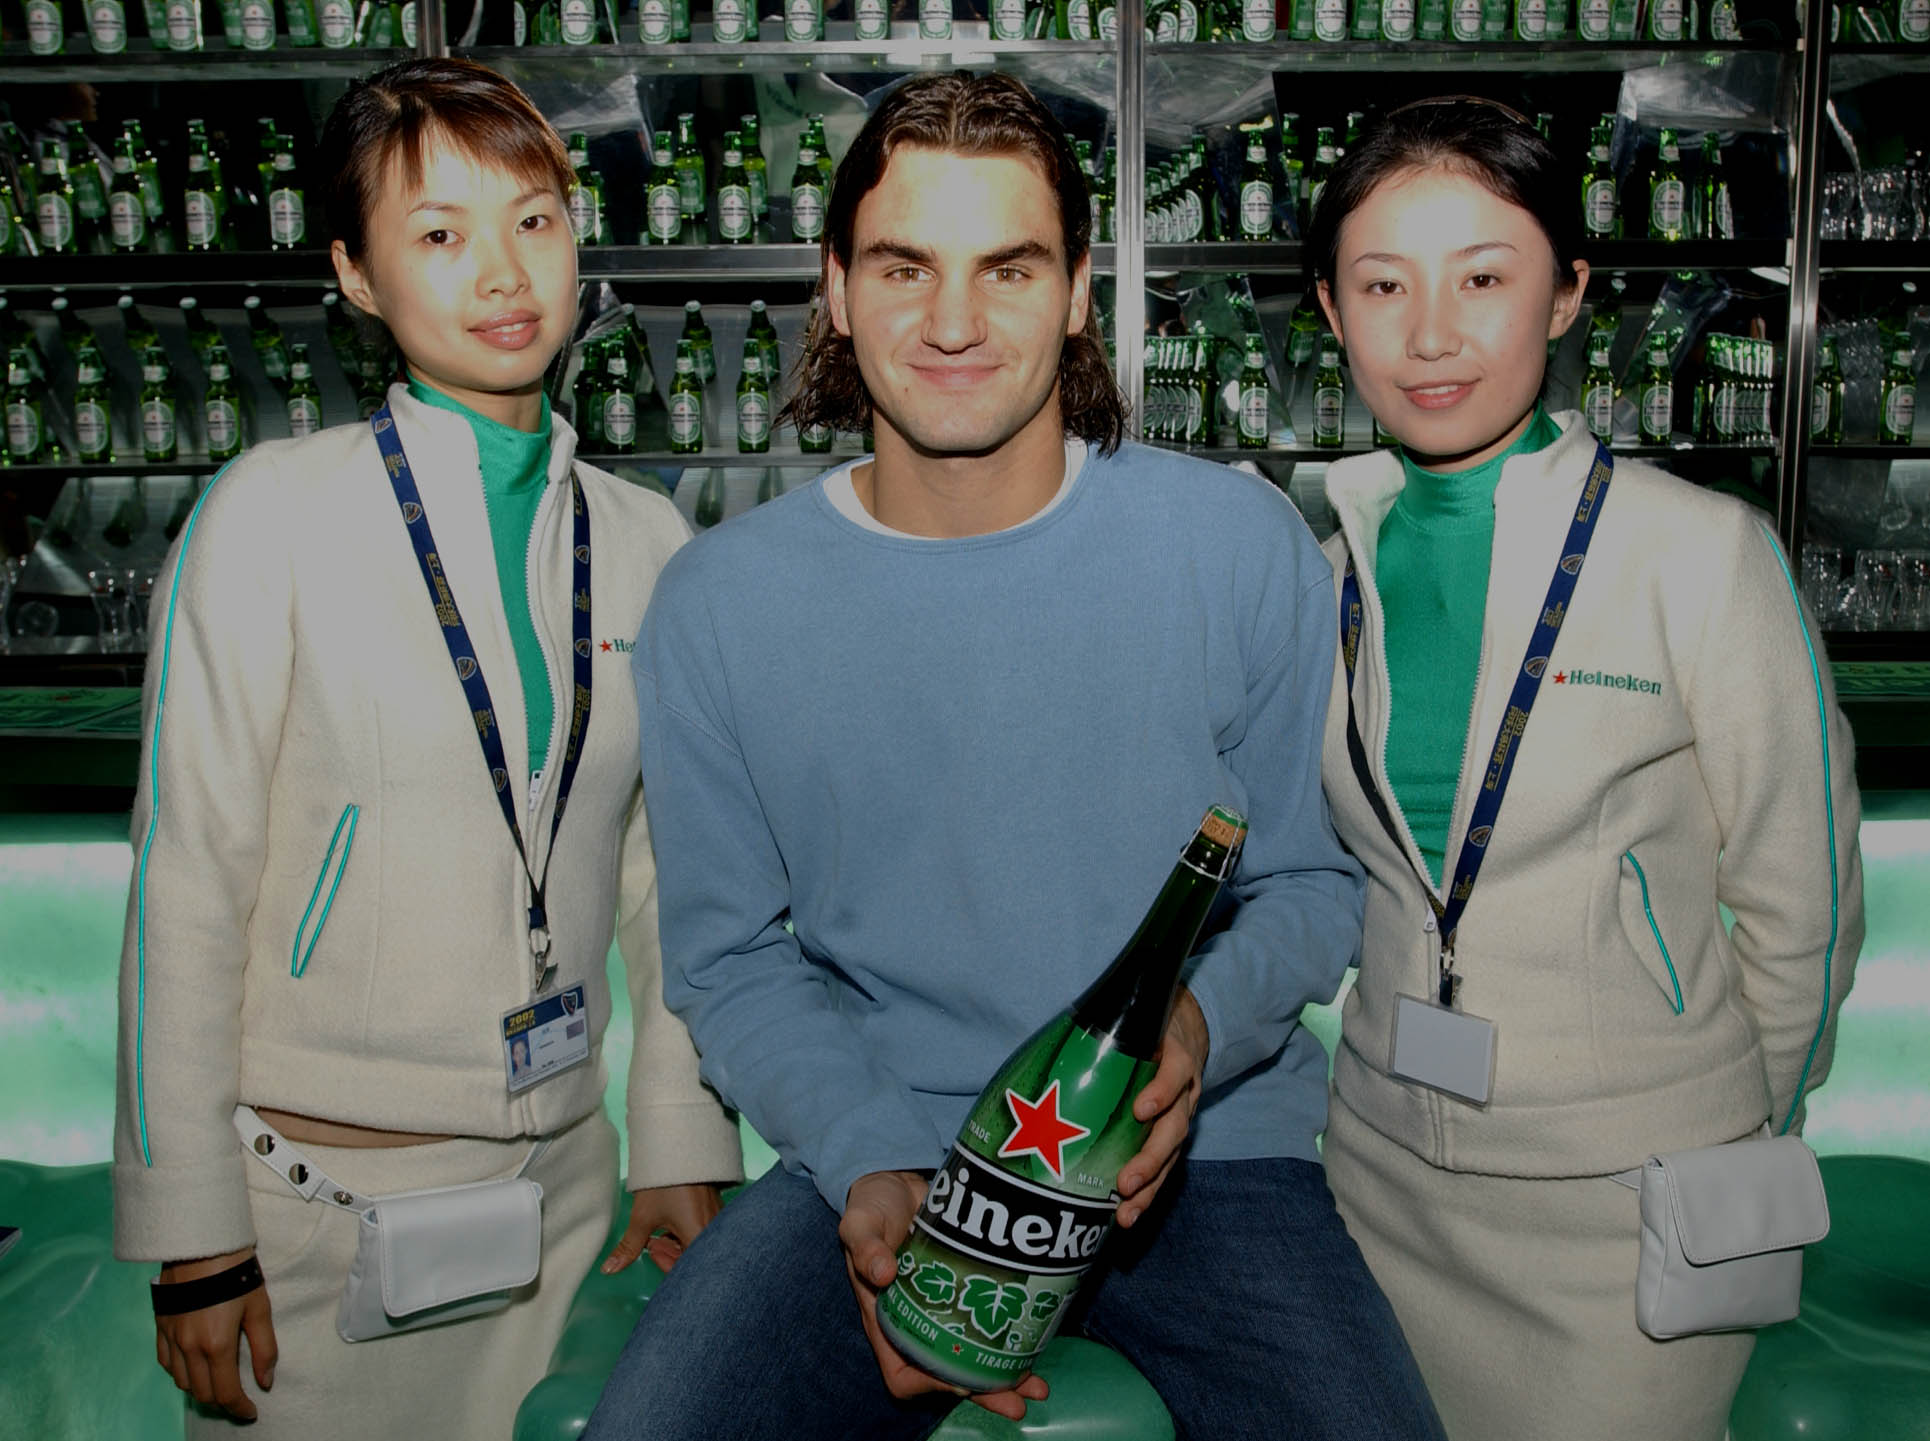 Roger Federer poses for pictures and signs autographs in the Heineken VIP hospitality area/